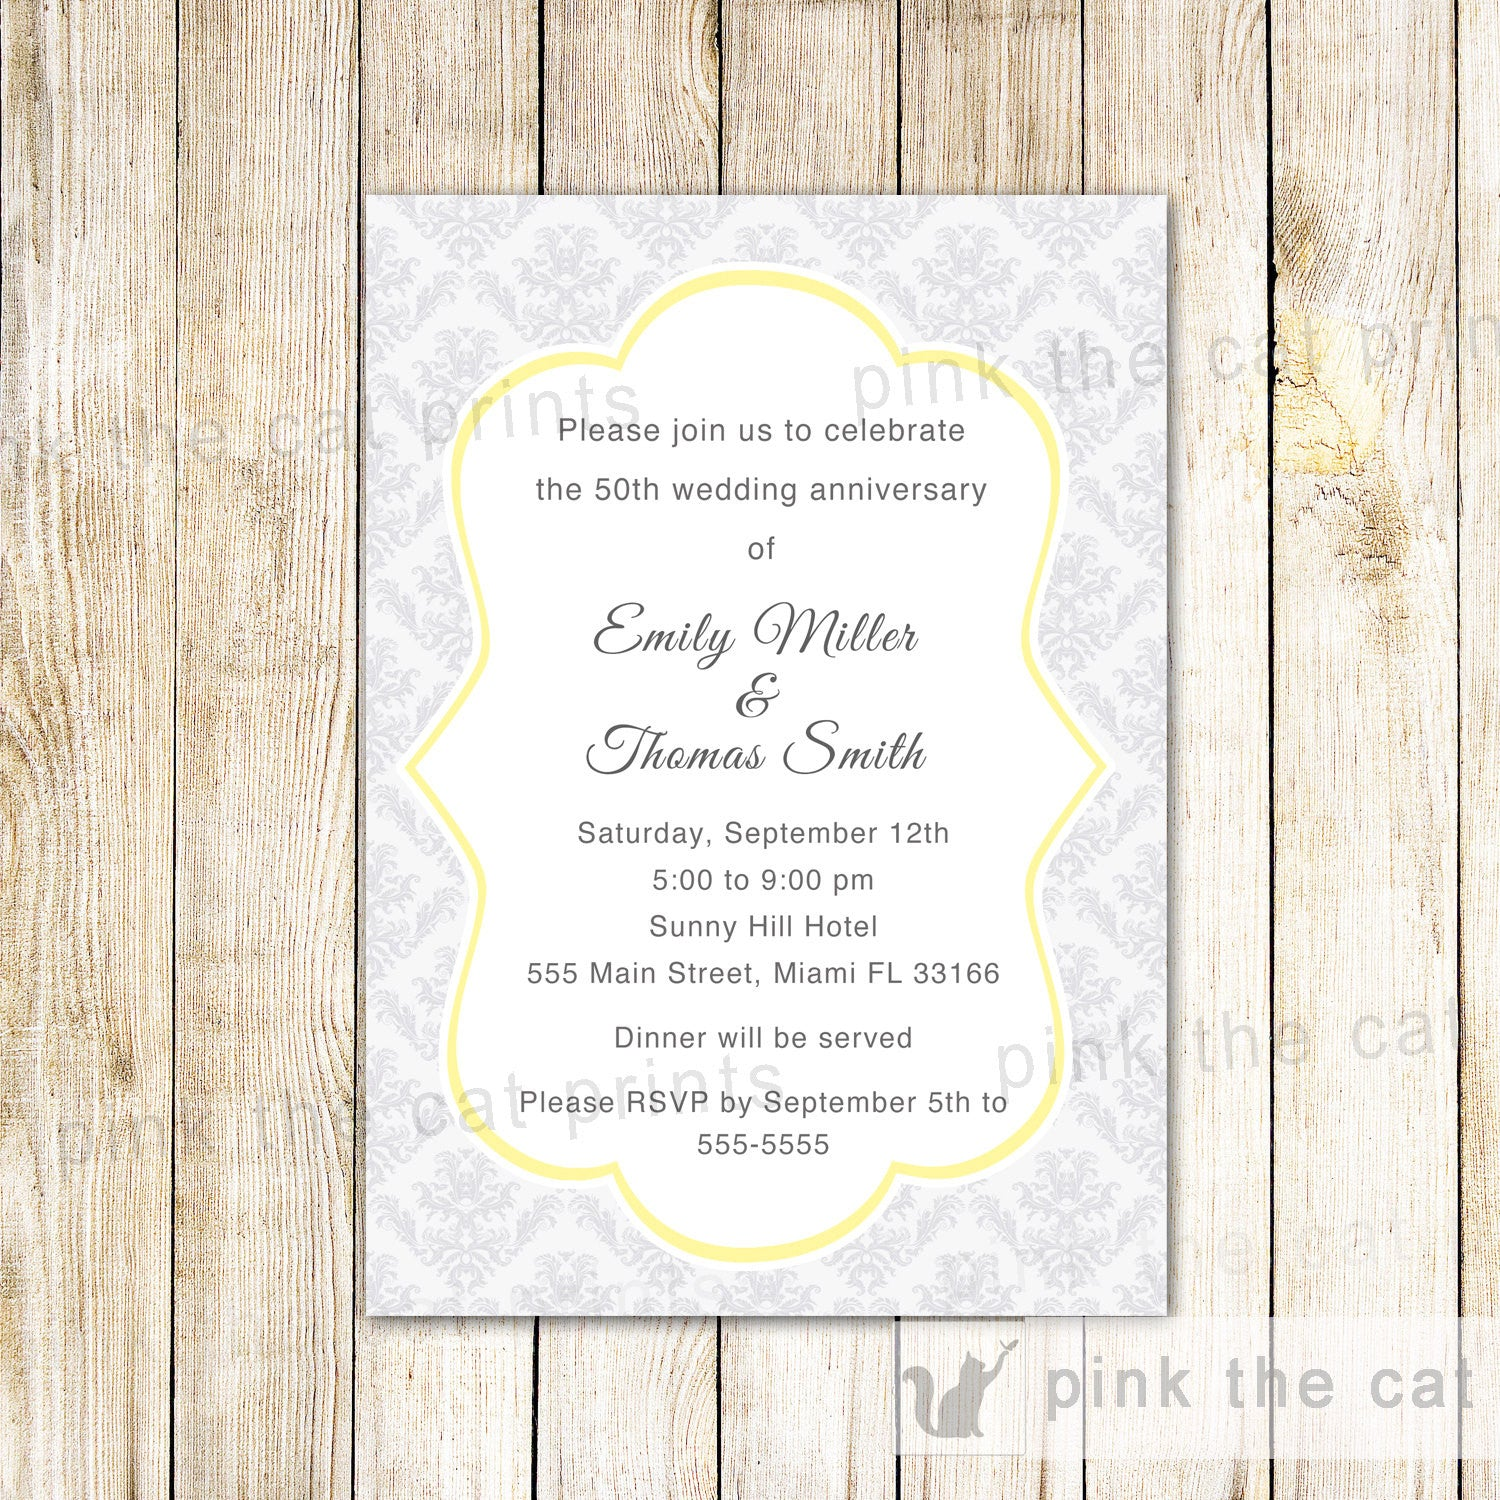 50th Wedding Anniversary Invitation Gold Silver Damask – Pink The Cat